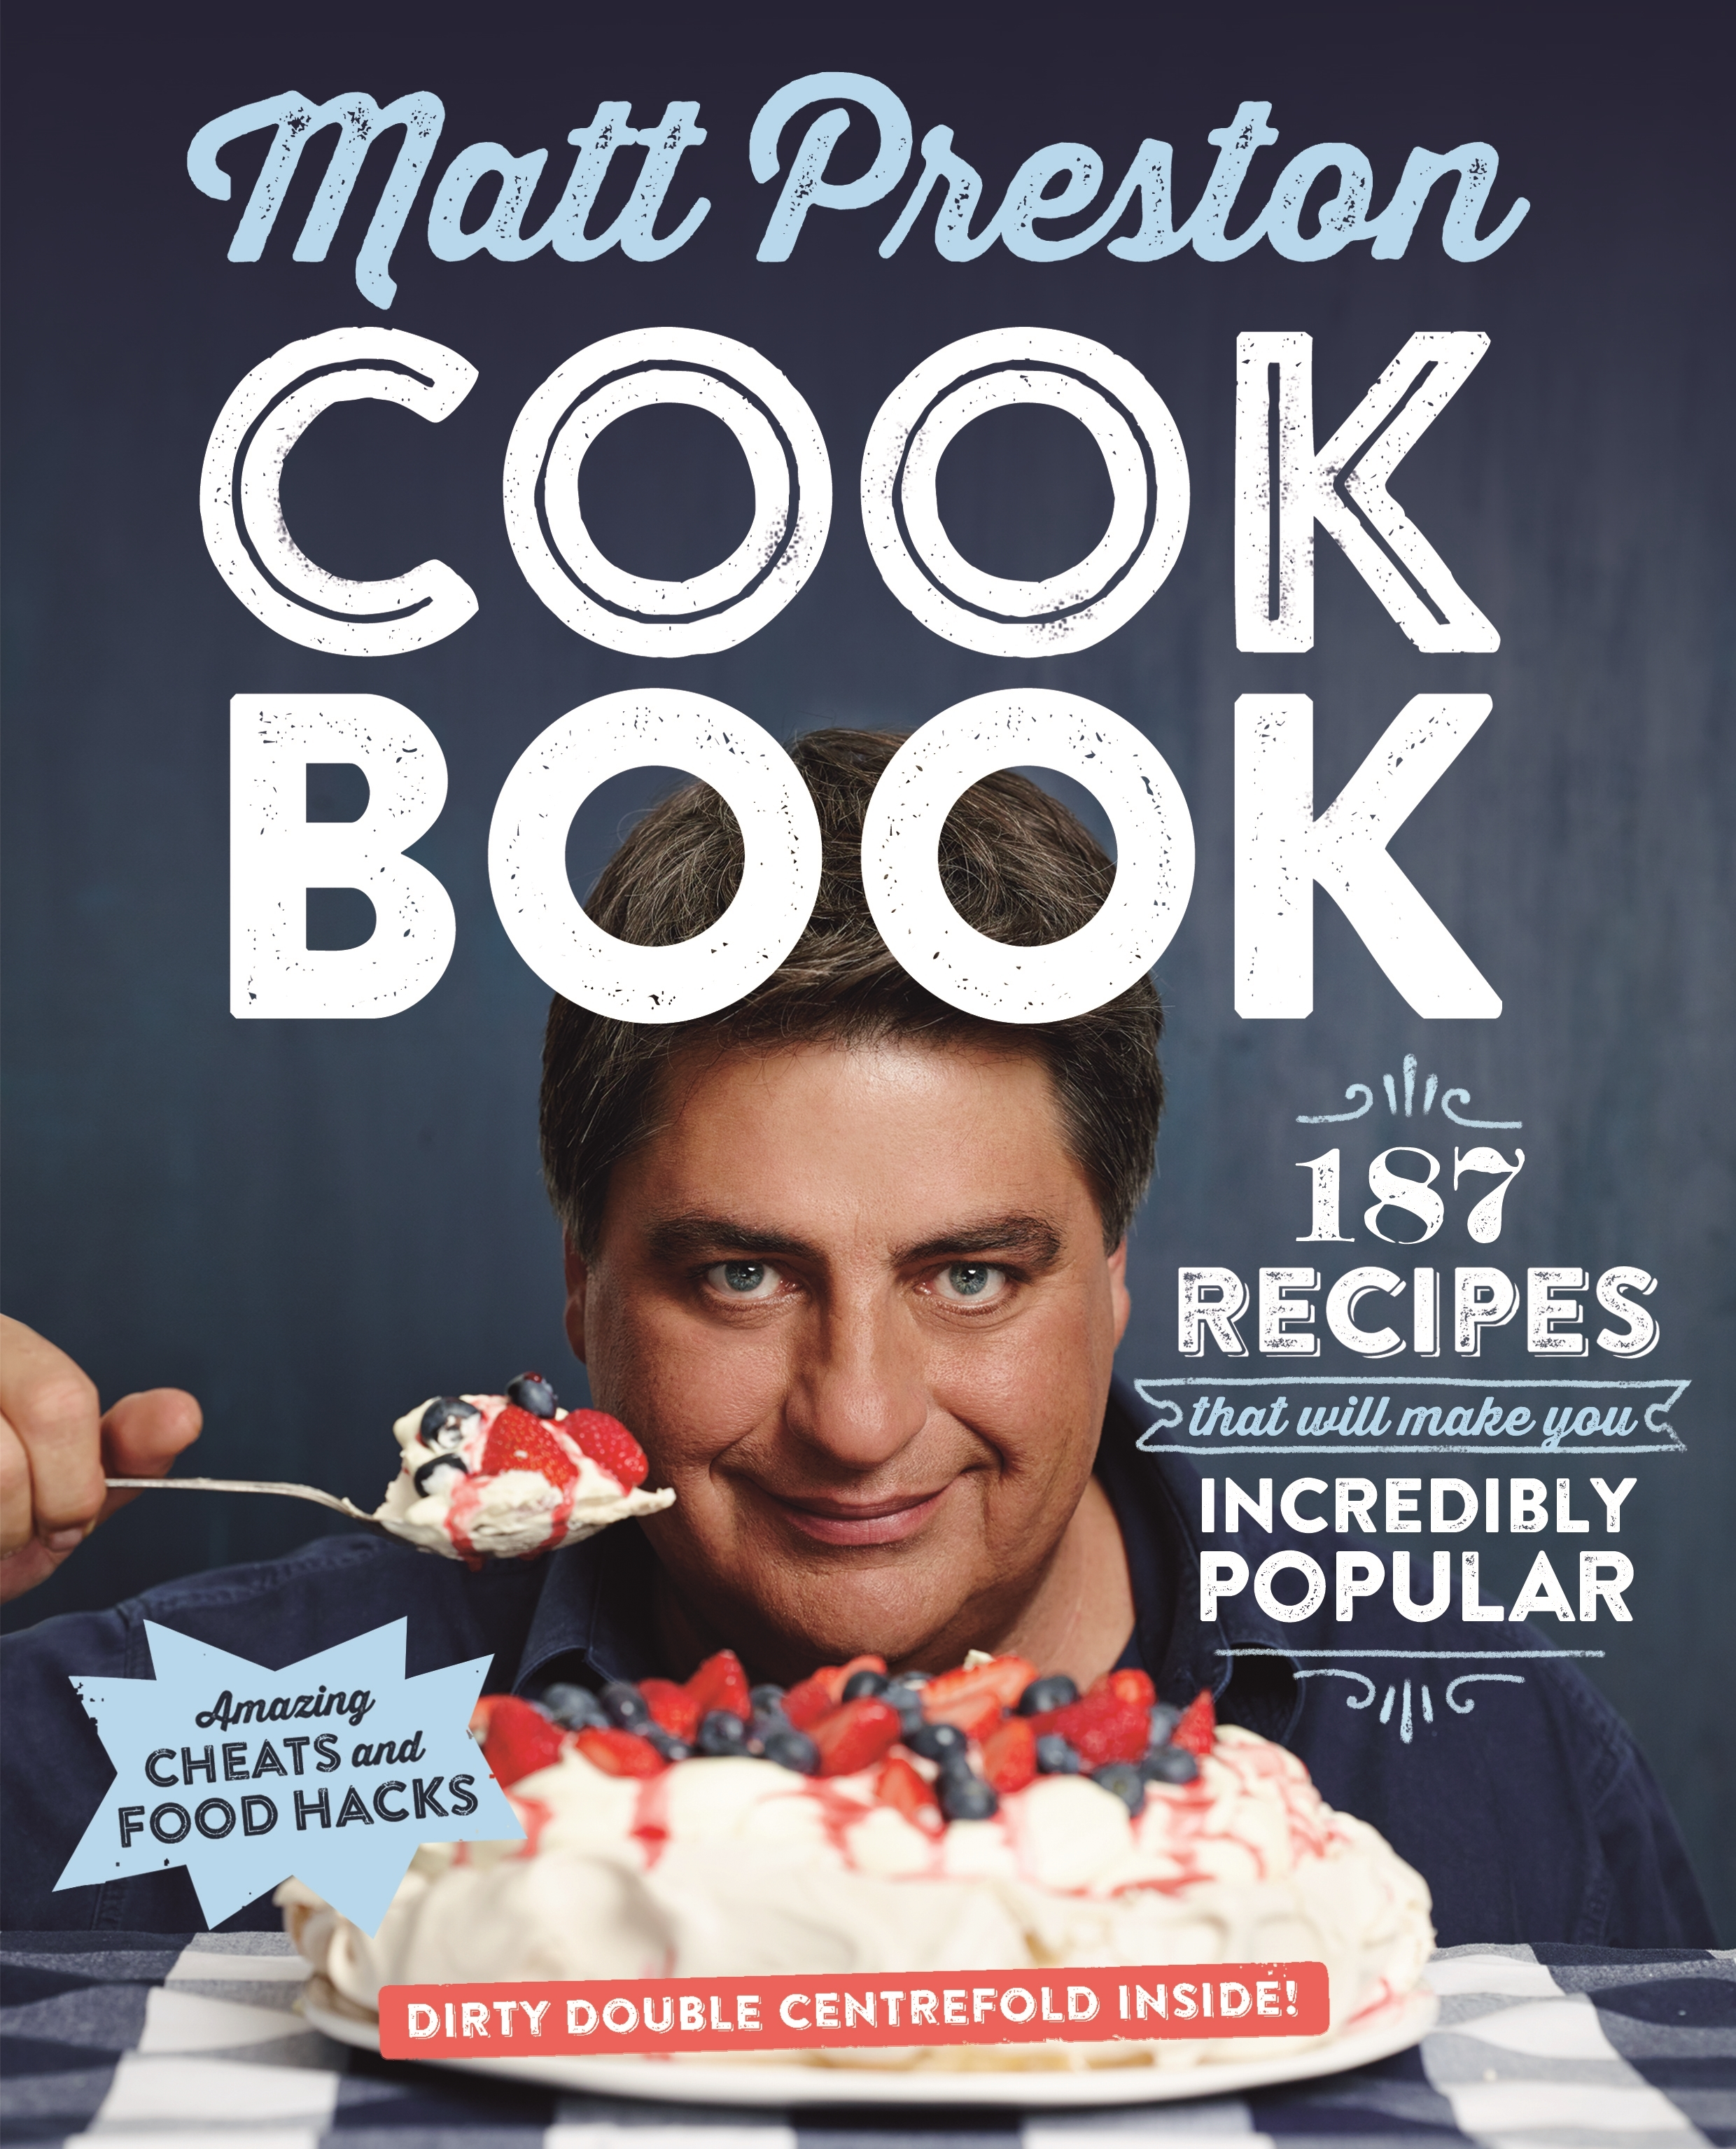 Cook Book: 187 recipes that will make you incredibly popular